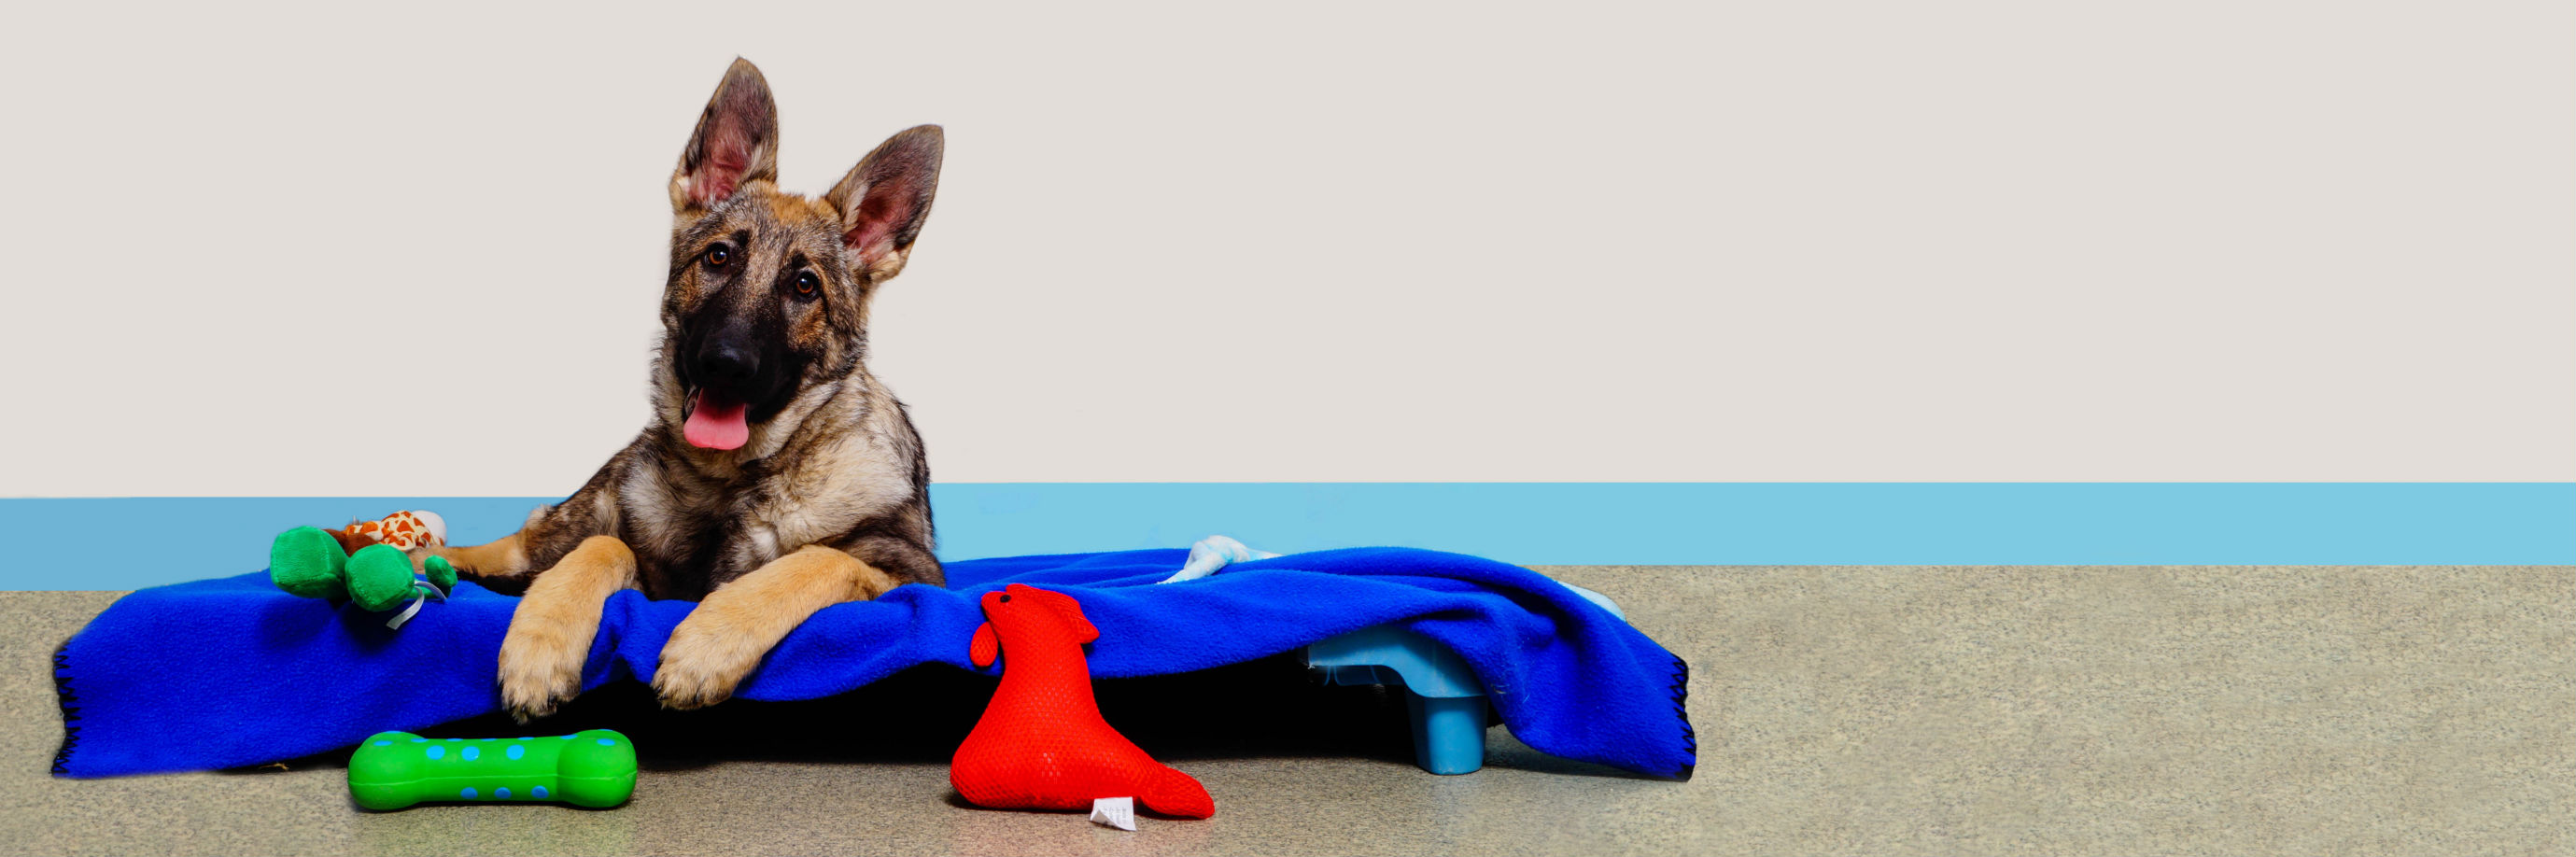 Kennelwood Pet Resorts: St Louis Doggy Daycare | Boarding